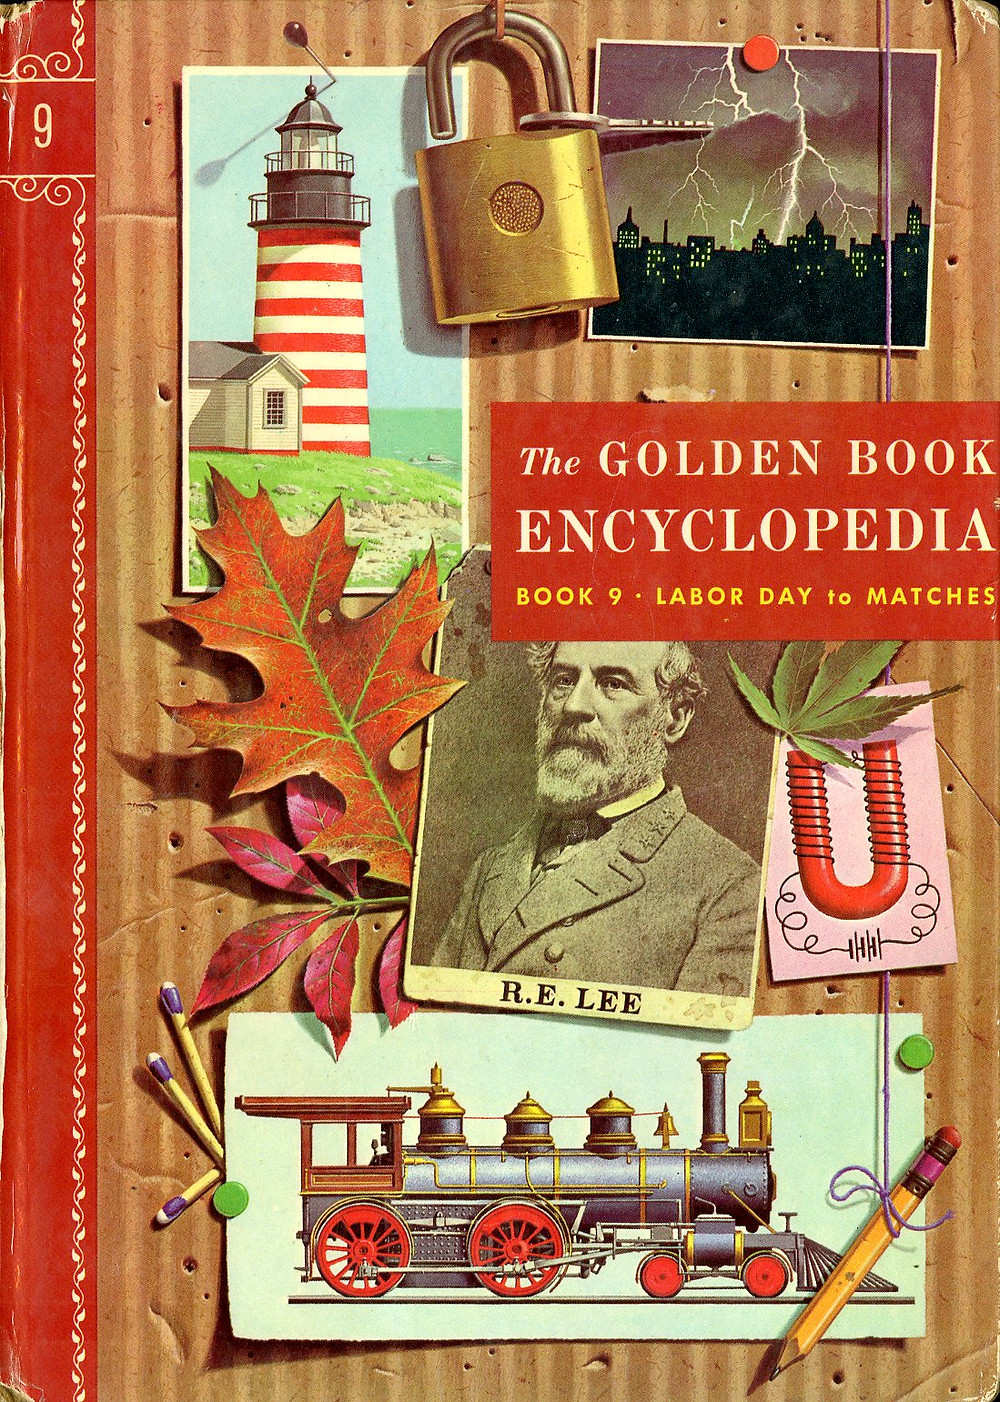 The Golden Book Encyclopedia was released in the 1980s.